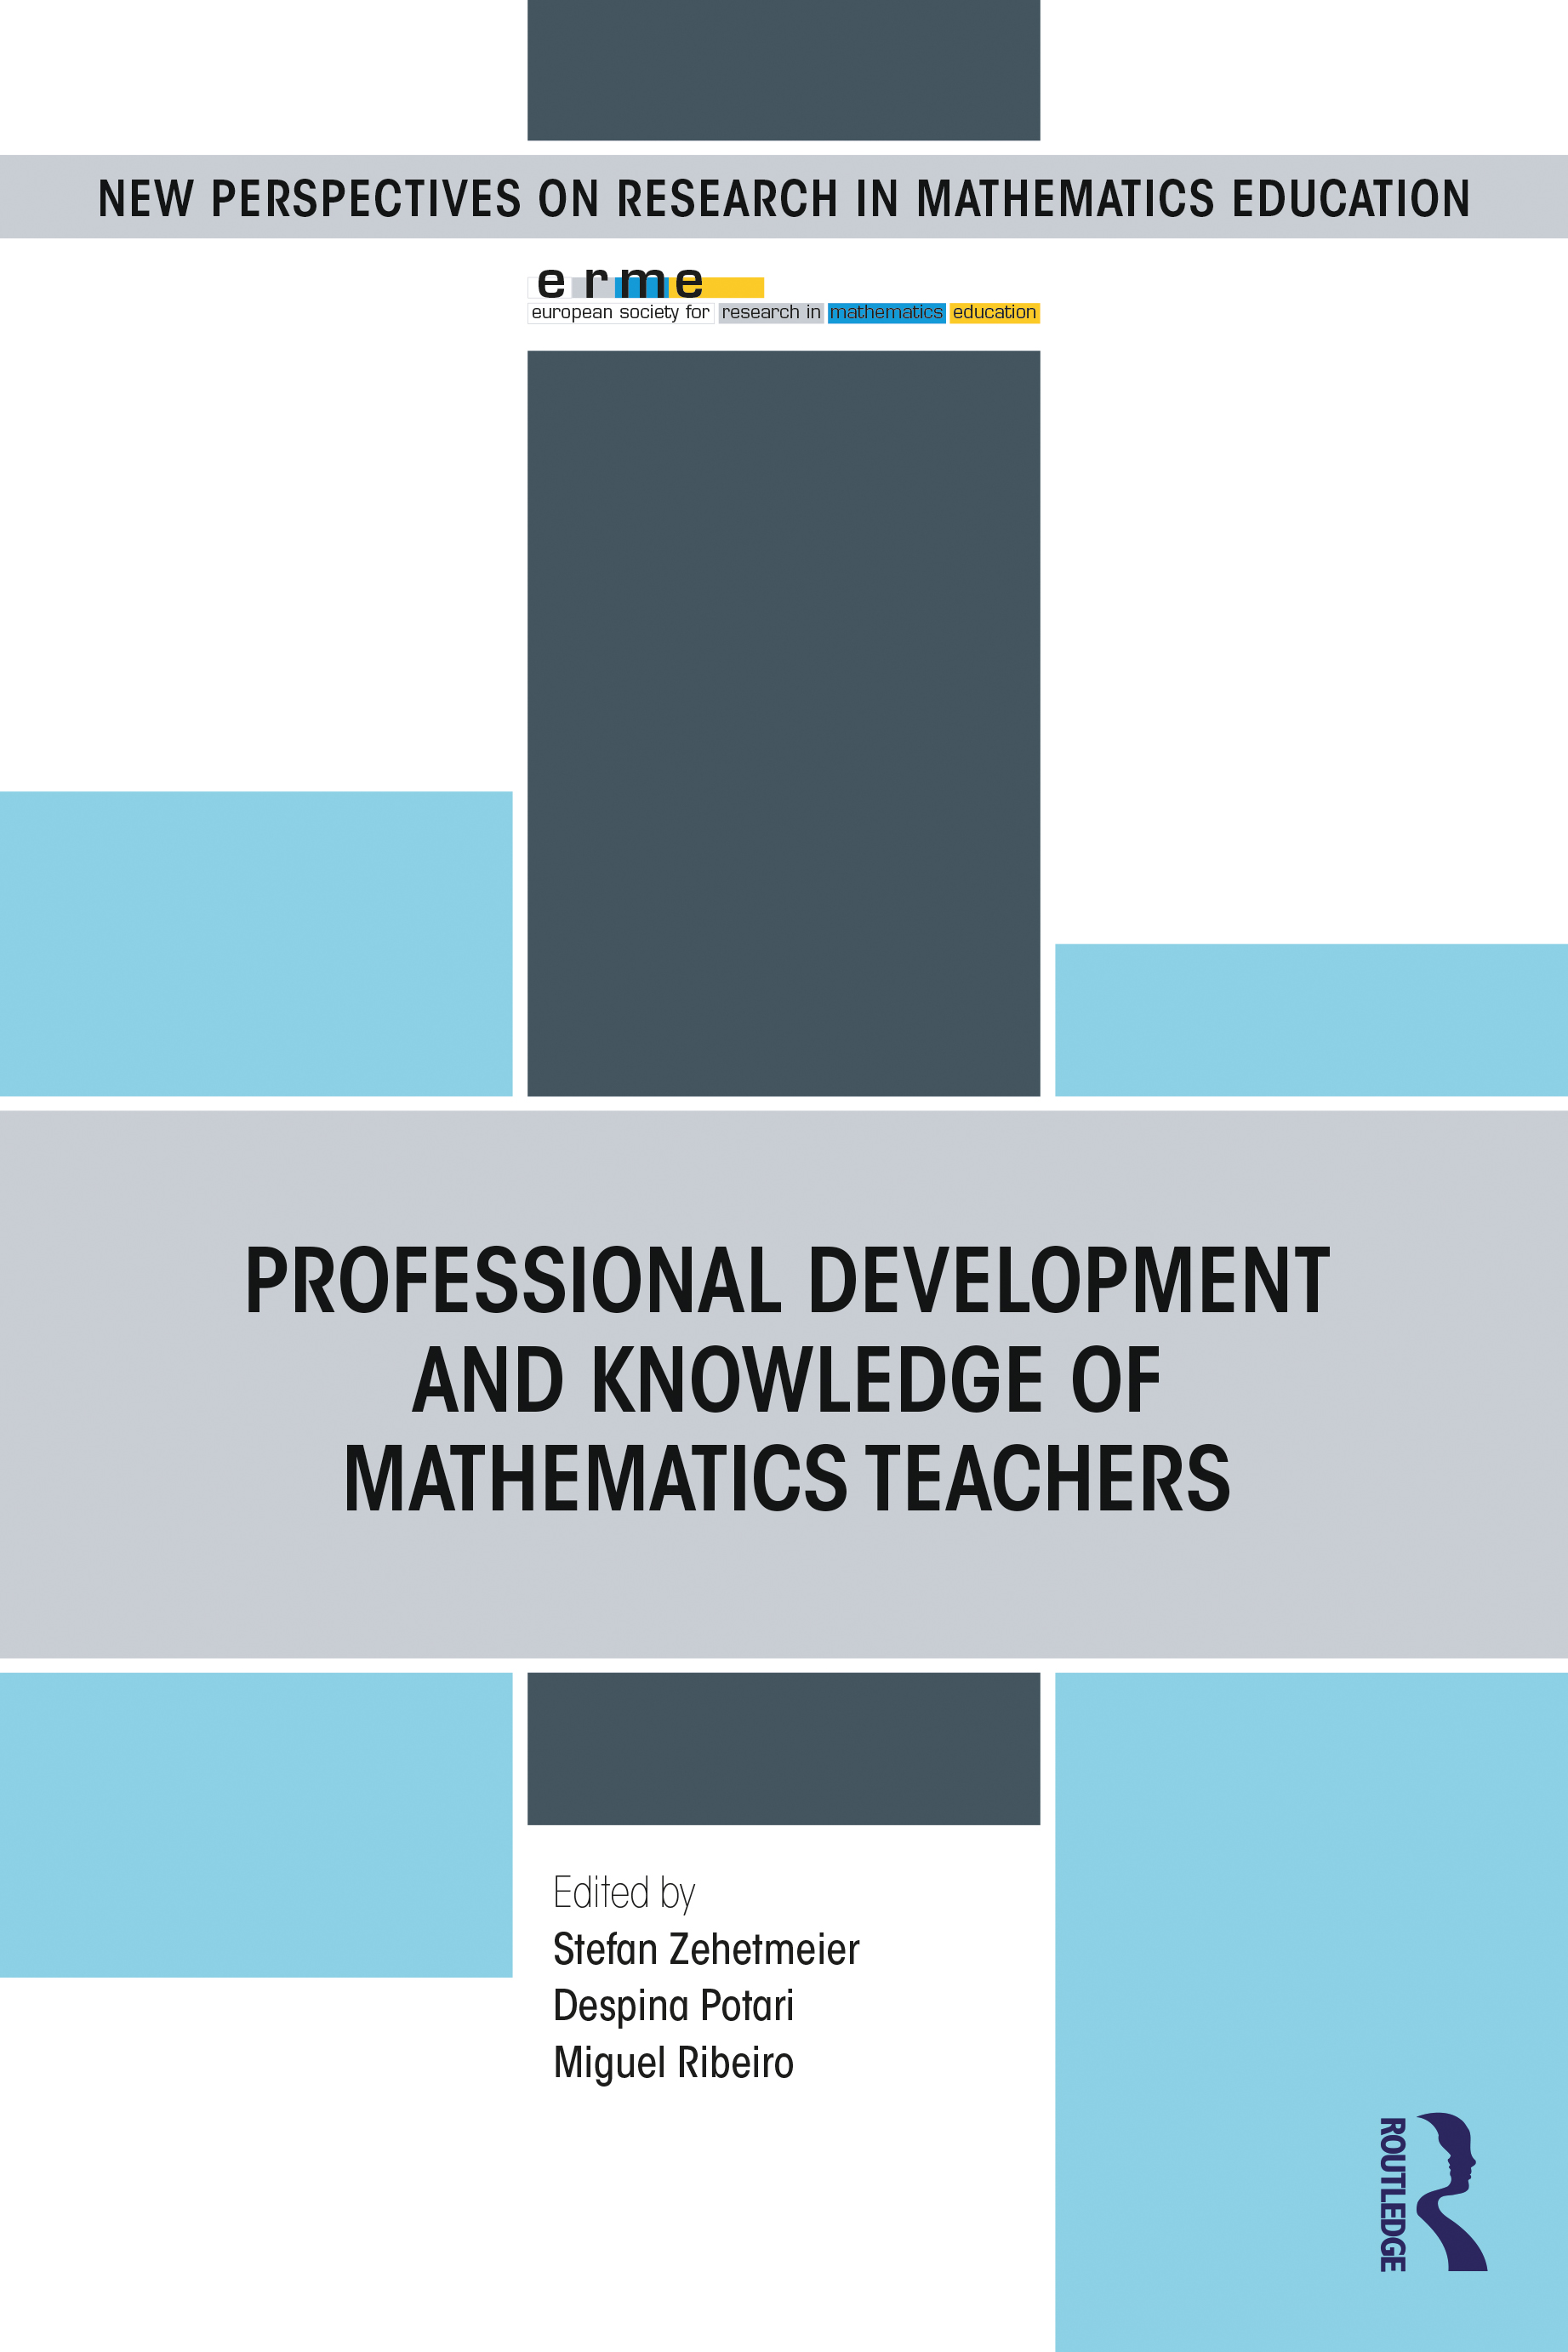 Using the Discourses of Learning in Education Mapping to Analyse Research into Mathematics Teacher Education and Professional Development